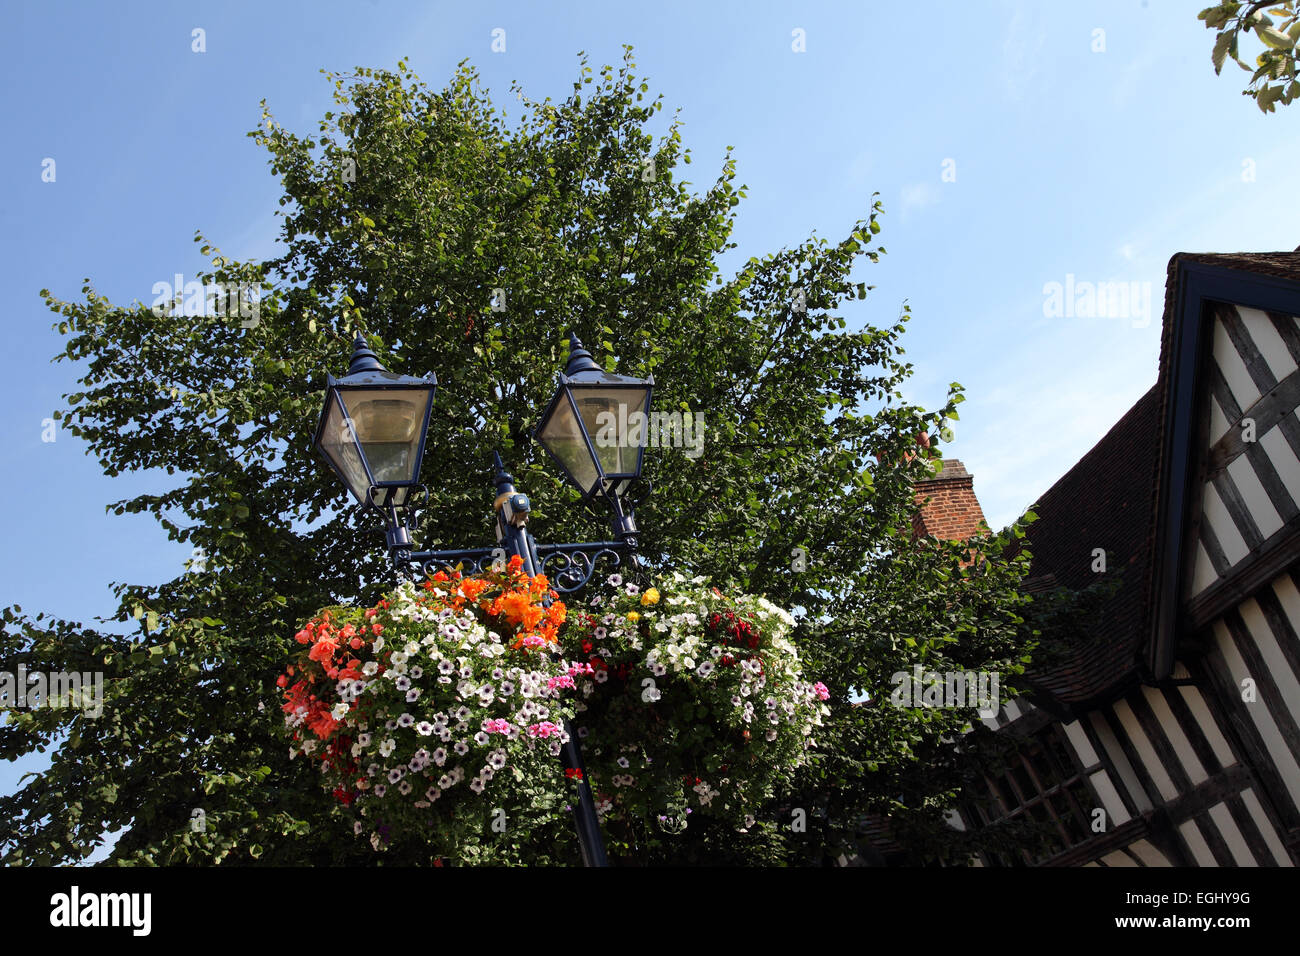 Bunting and floral decorations, hanging baskets on the High Street, Solihull - Stock Image